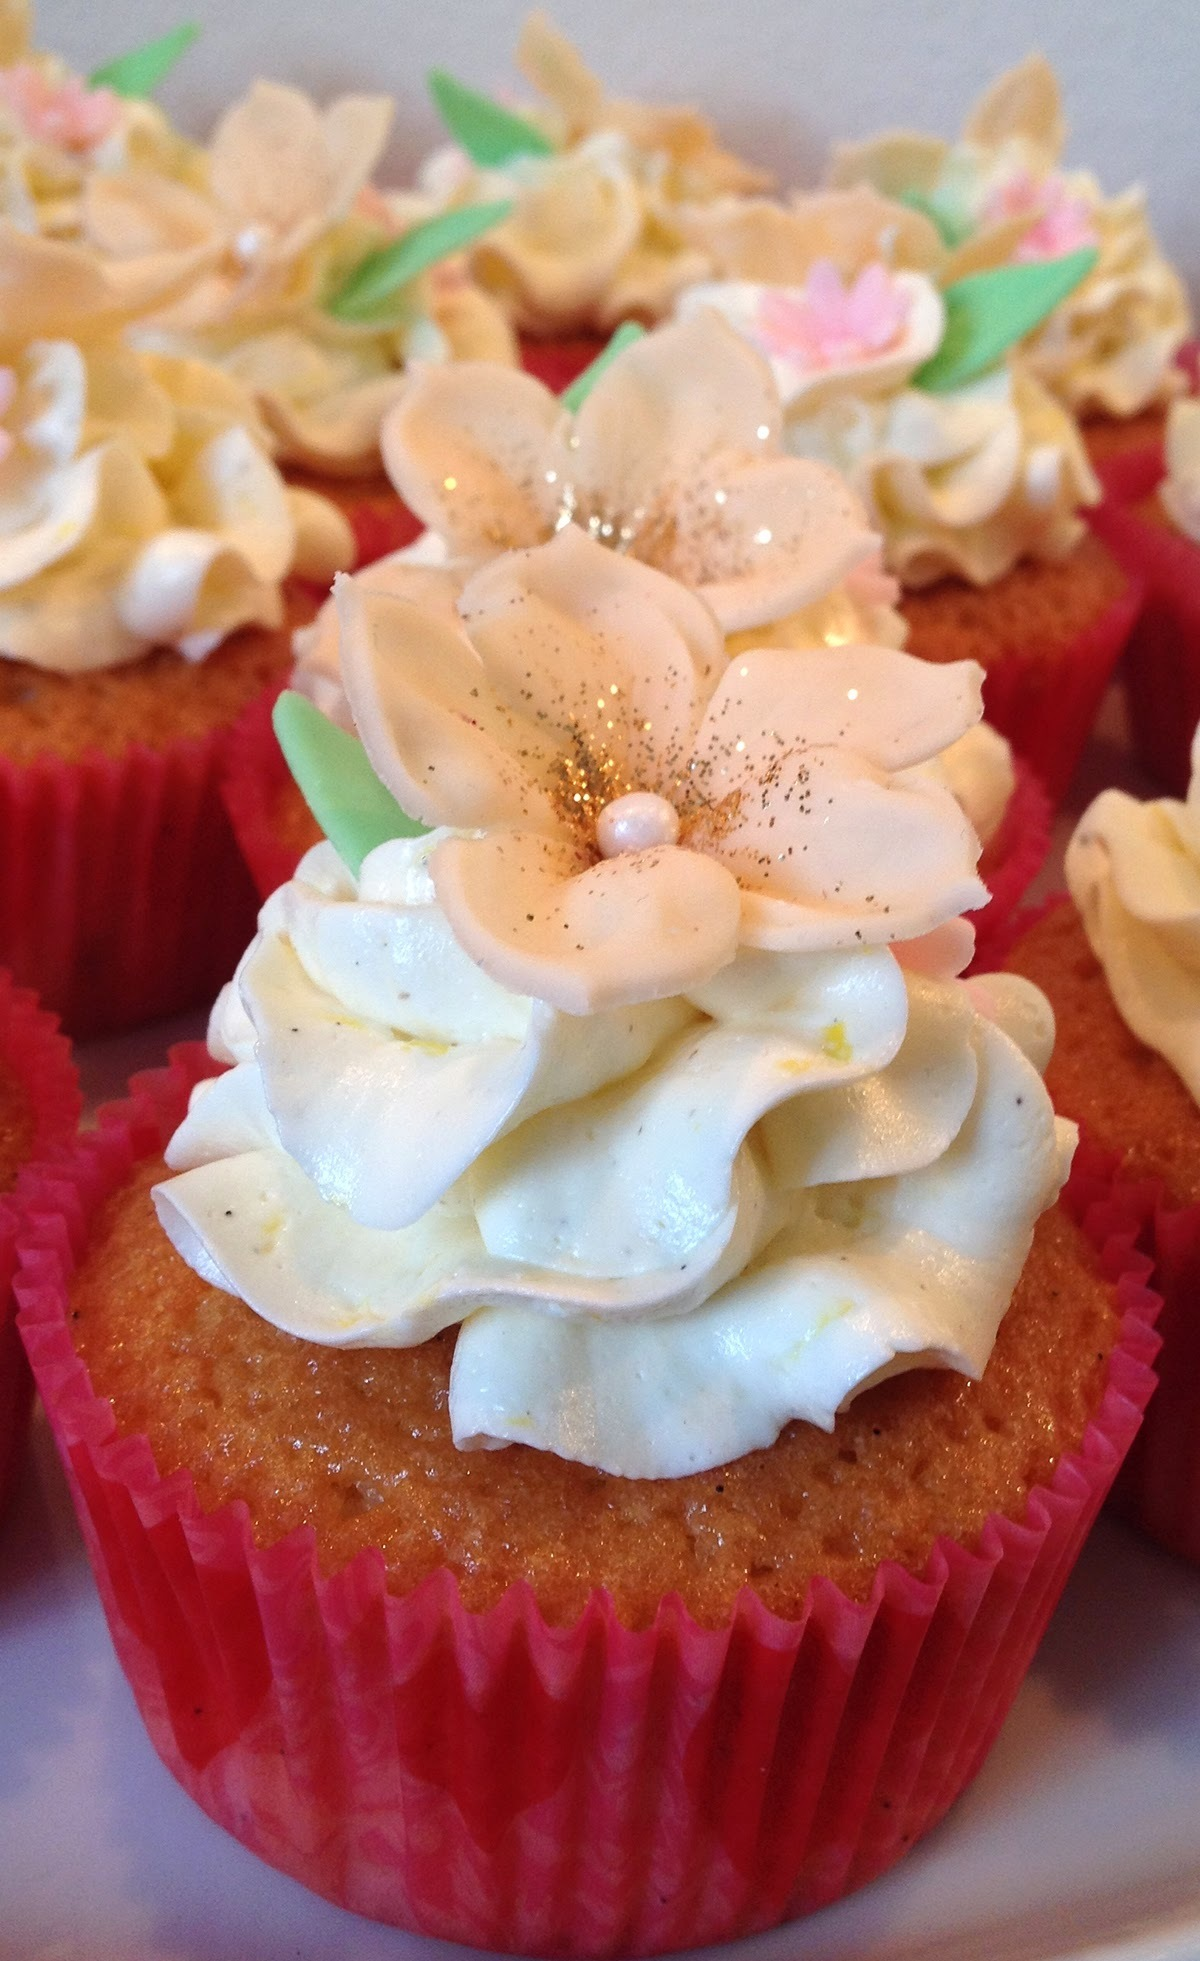 Vanille cupcakes med citron-marengs-frosting